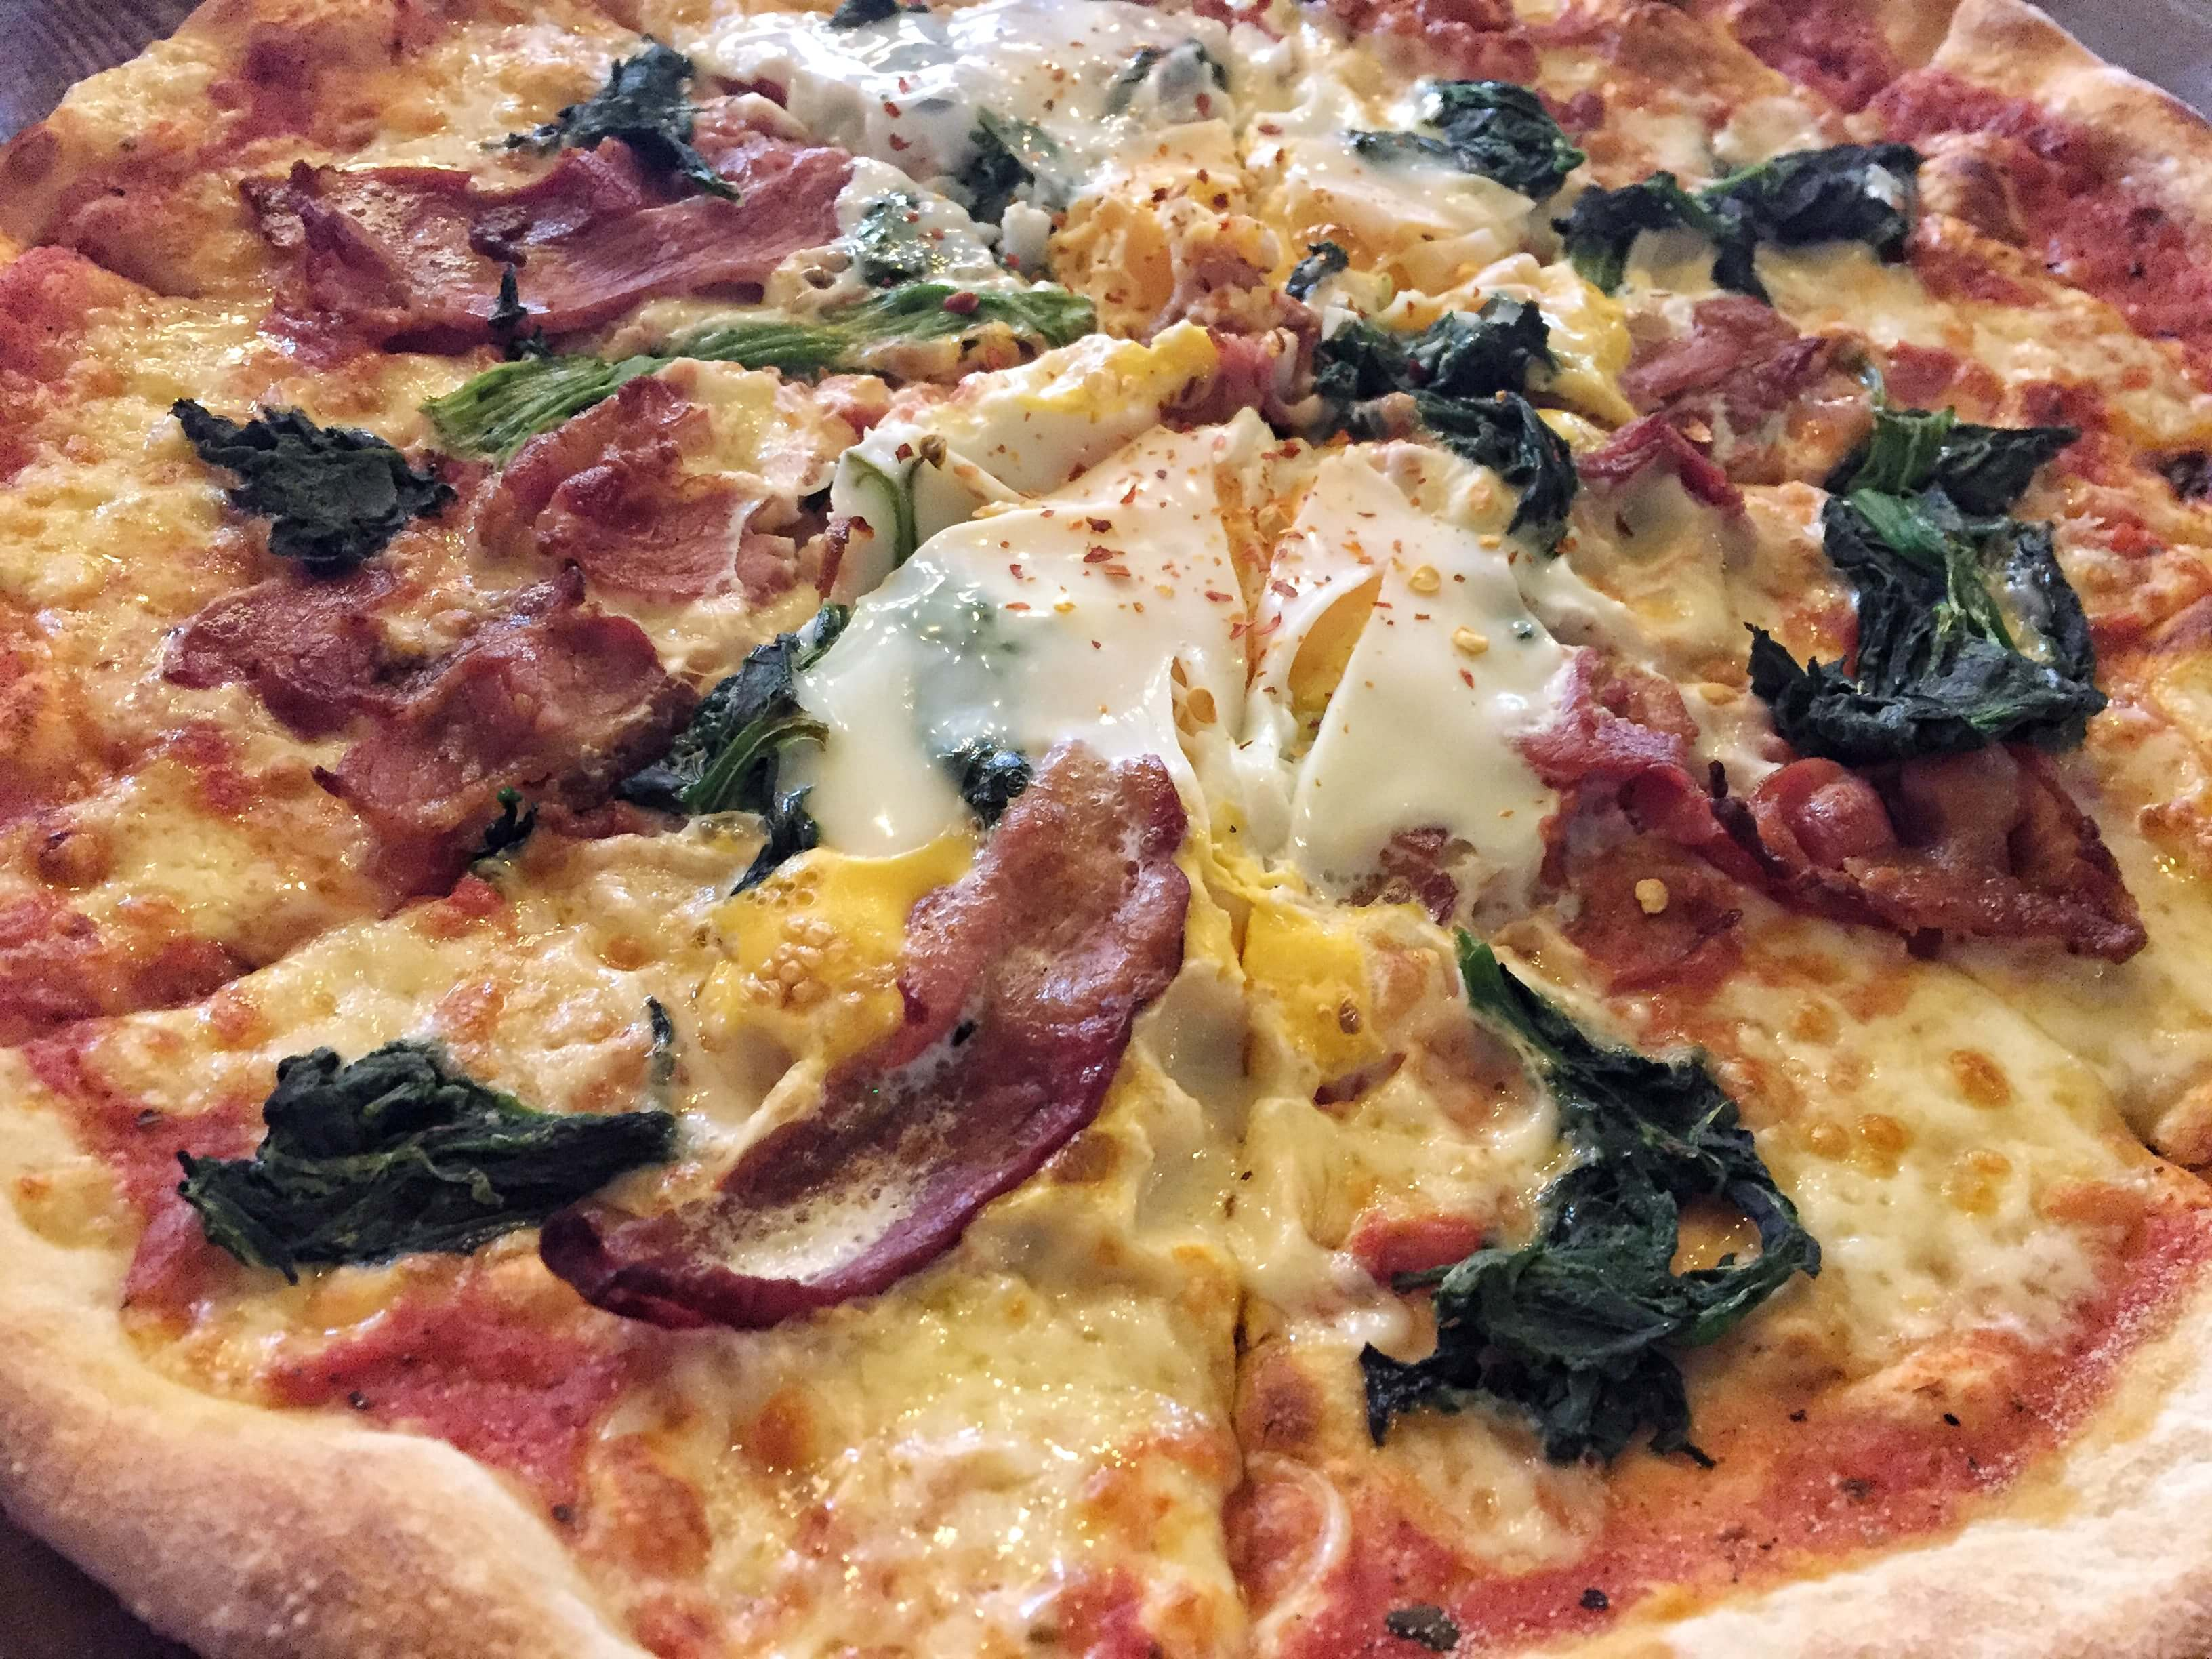 Pizza with bacon, egg, spinach and chilli at The Coach and Horses, Clapham, London